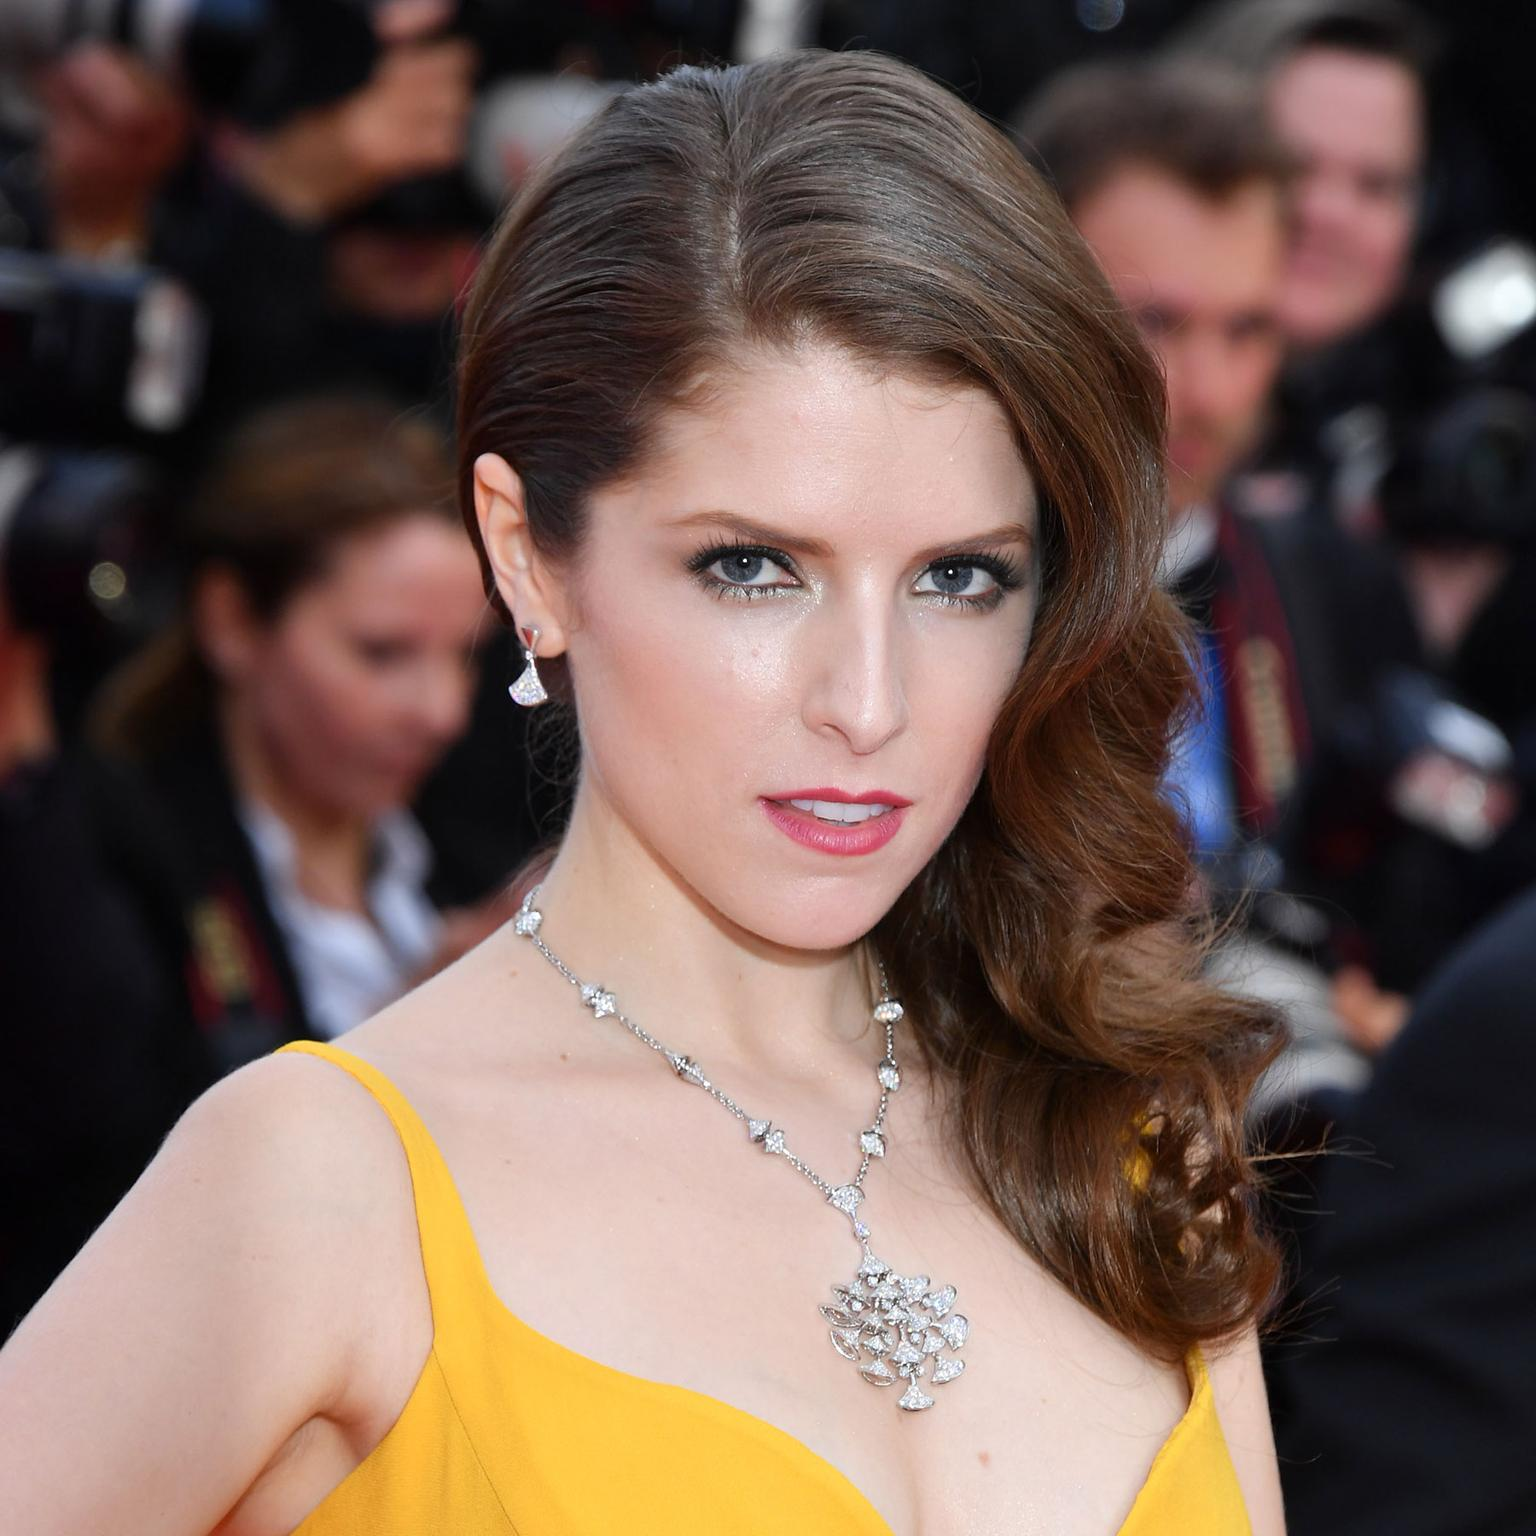 Cannes 2016 Day 1: Anna Kendrick in Bulgari